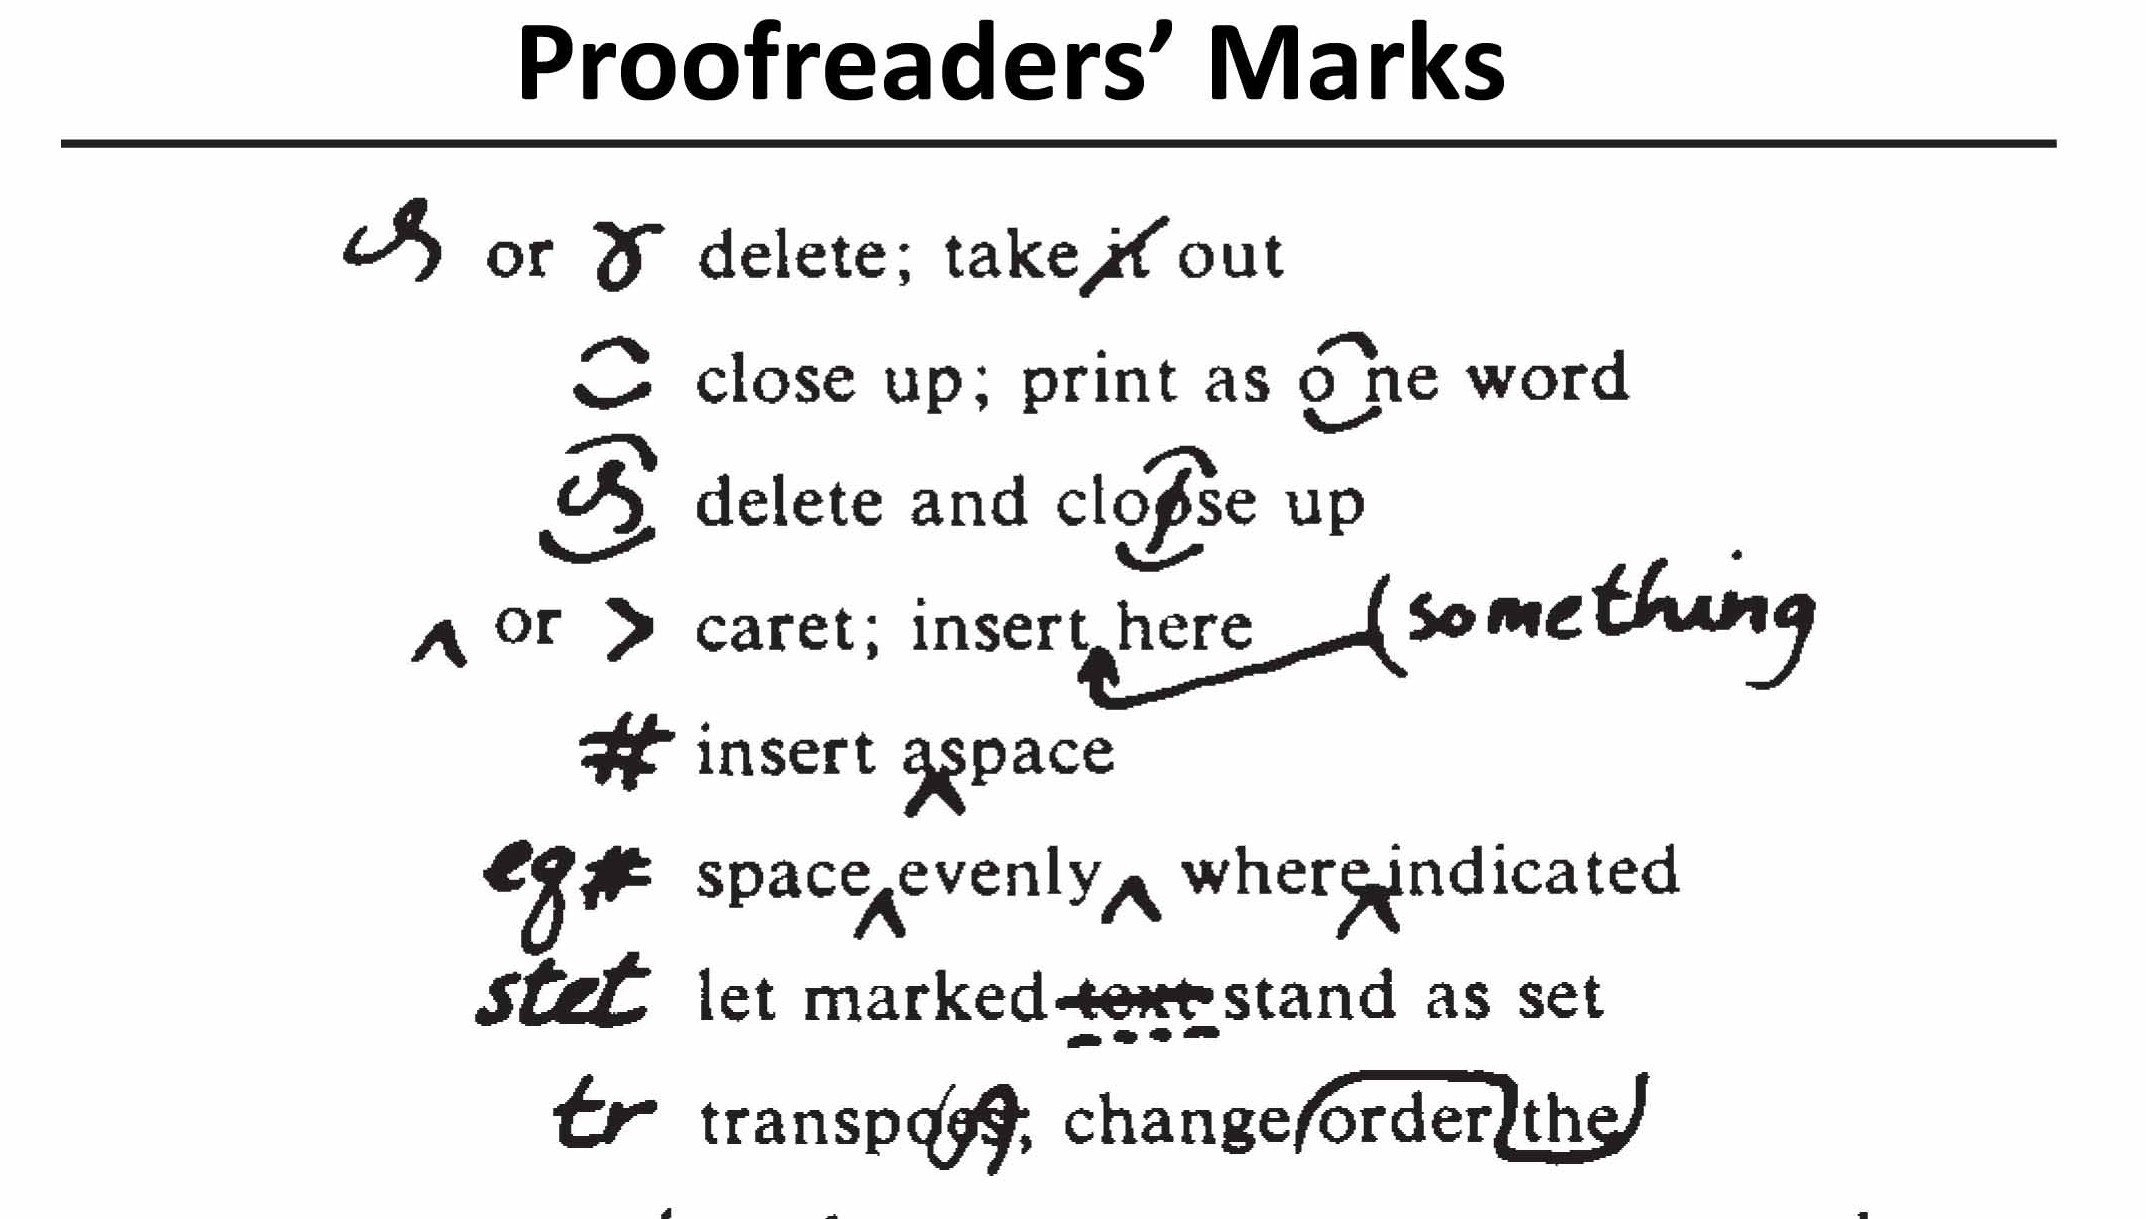 Proofreading and bsi mark ups network languages proofmarks biocorpaavc Image collections